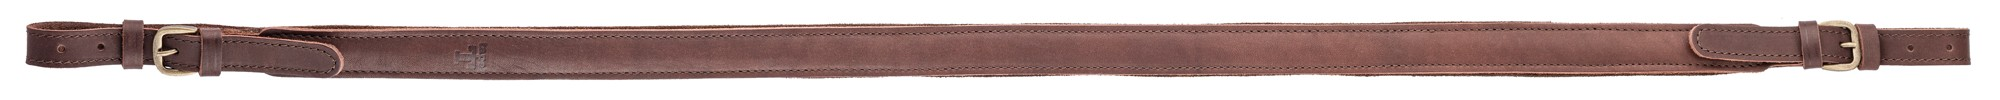 CU1308 Ruched leather shoulder strap, buttons - Country Saddlery - CU1308